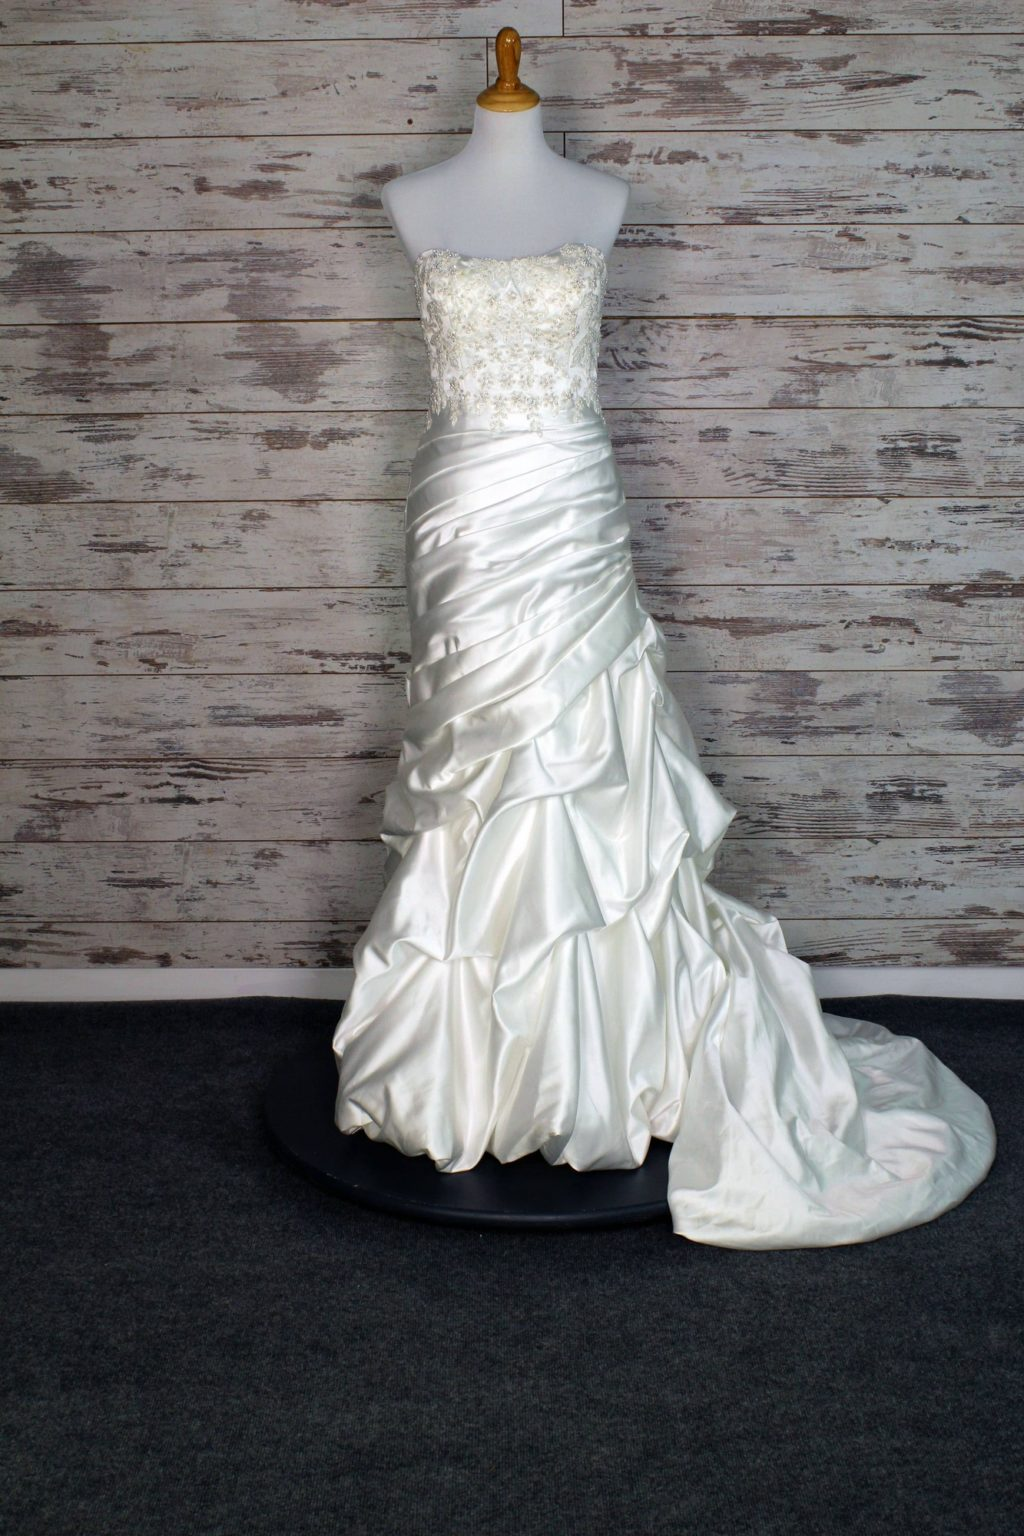 Buy a Designer Wedding Dress at Huge Discount. Up to 80% off Retail.